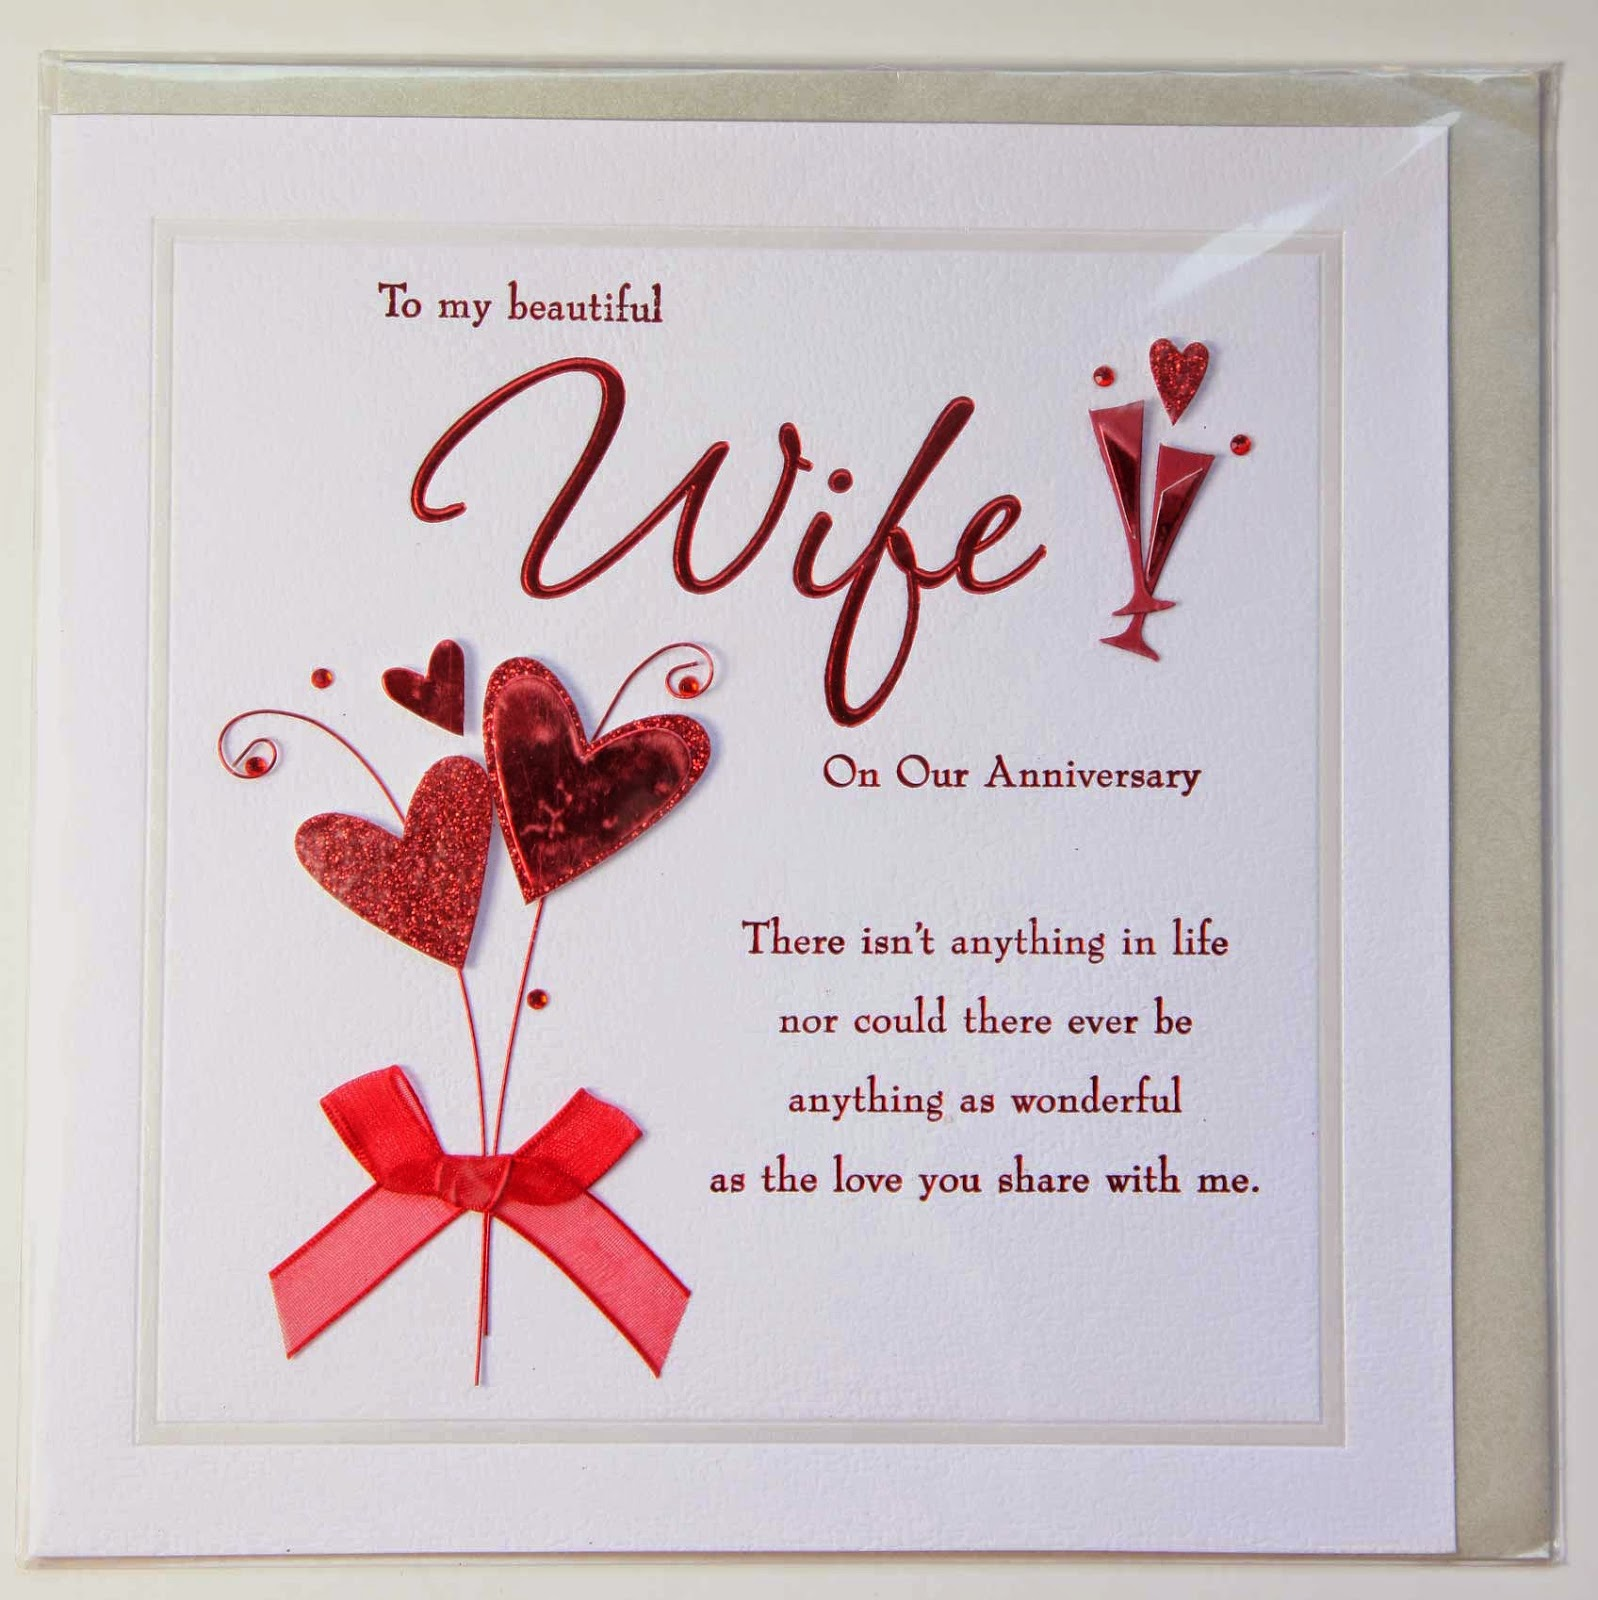 Wedding anniversary card design for wife with quote sang